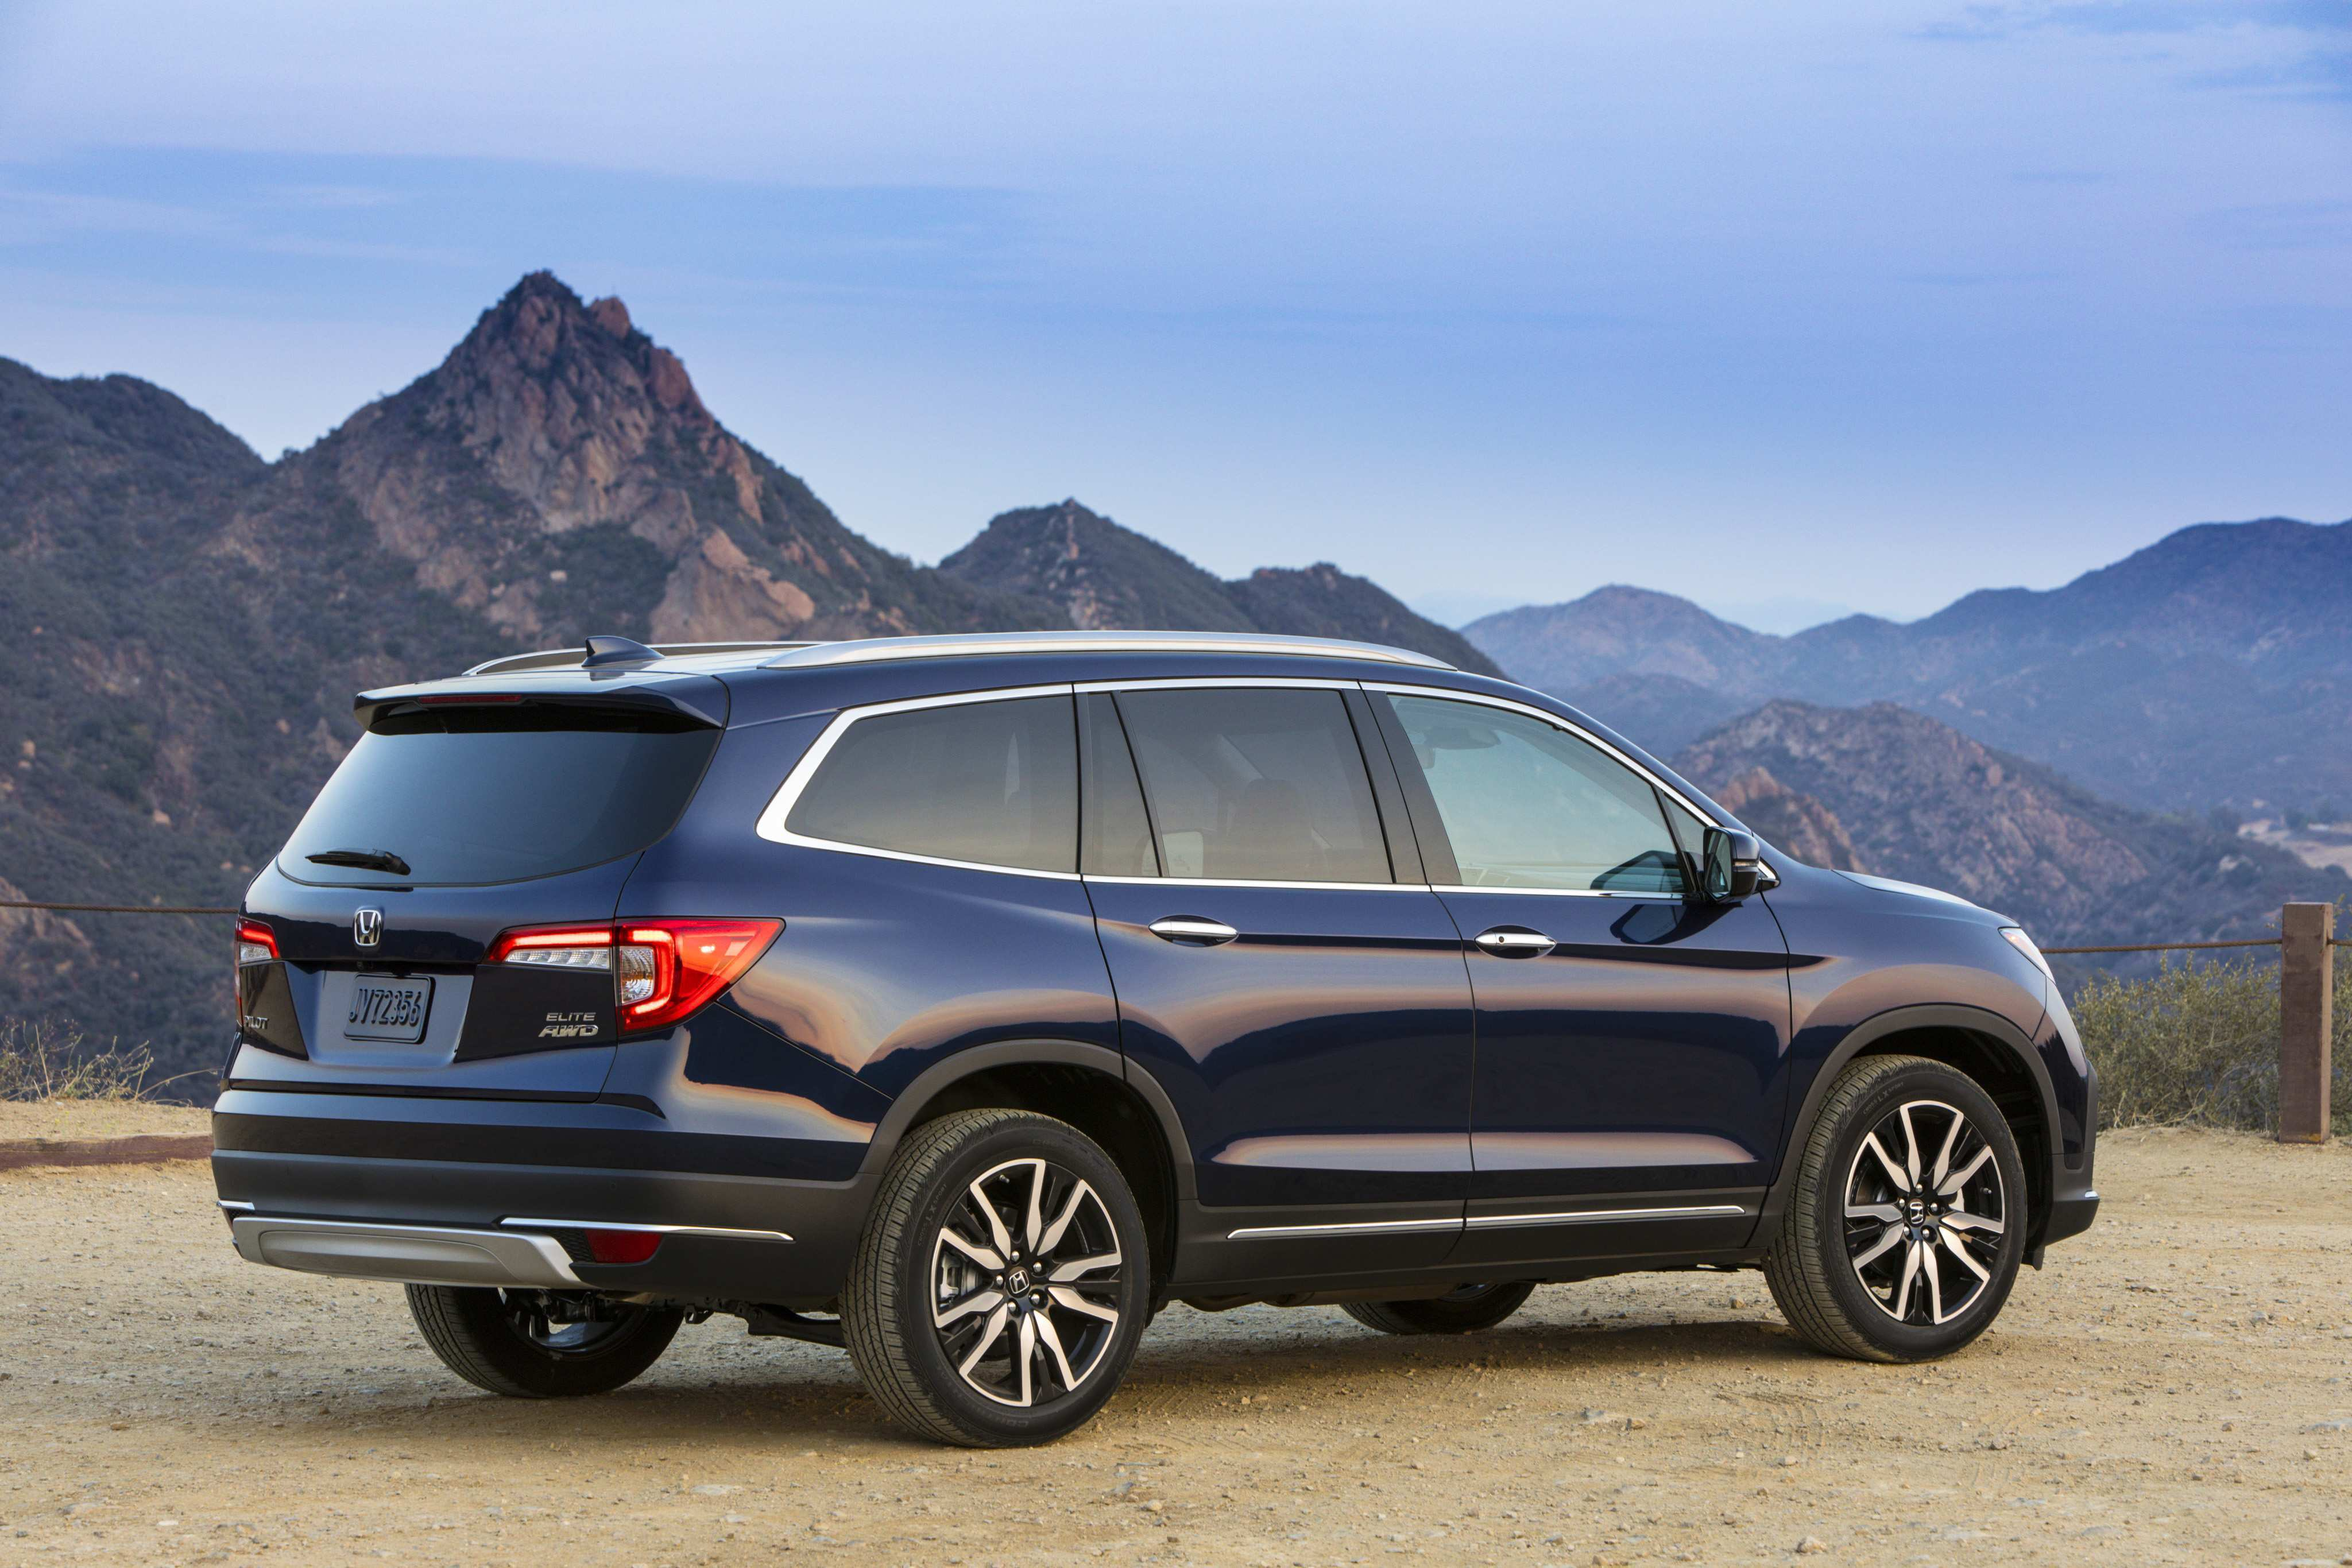 34 New 2020 Honda Pilot Price And Release Date